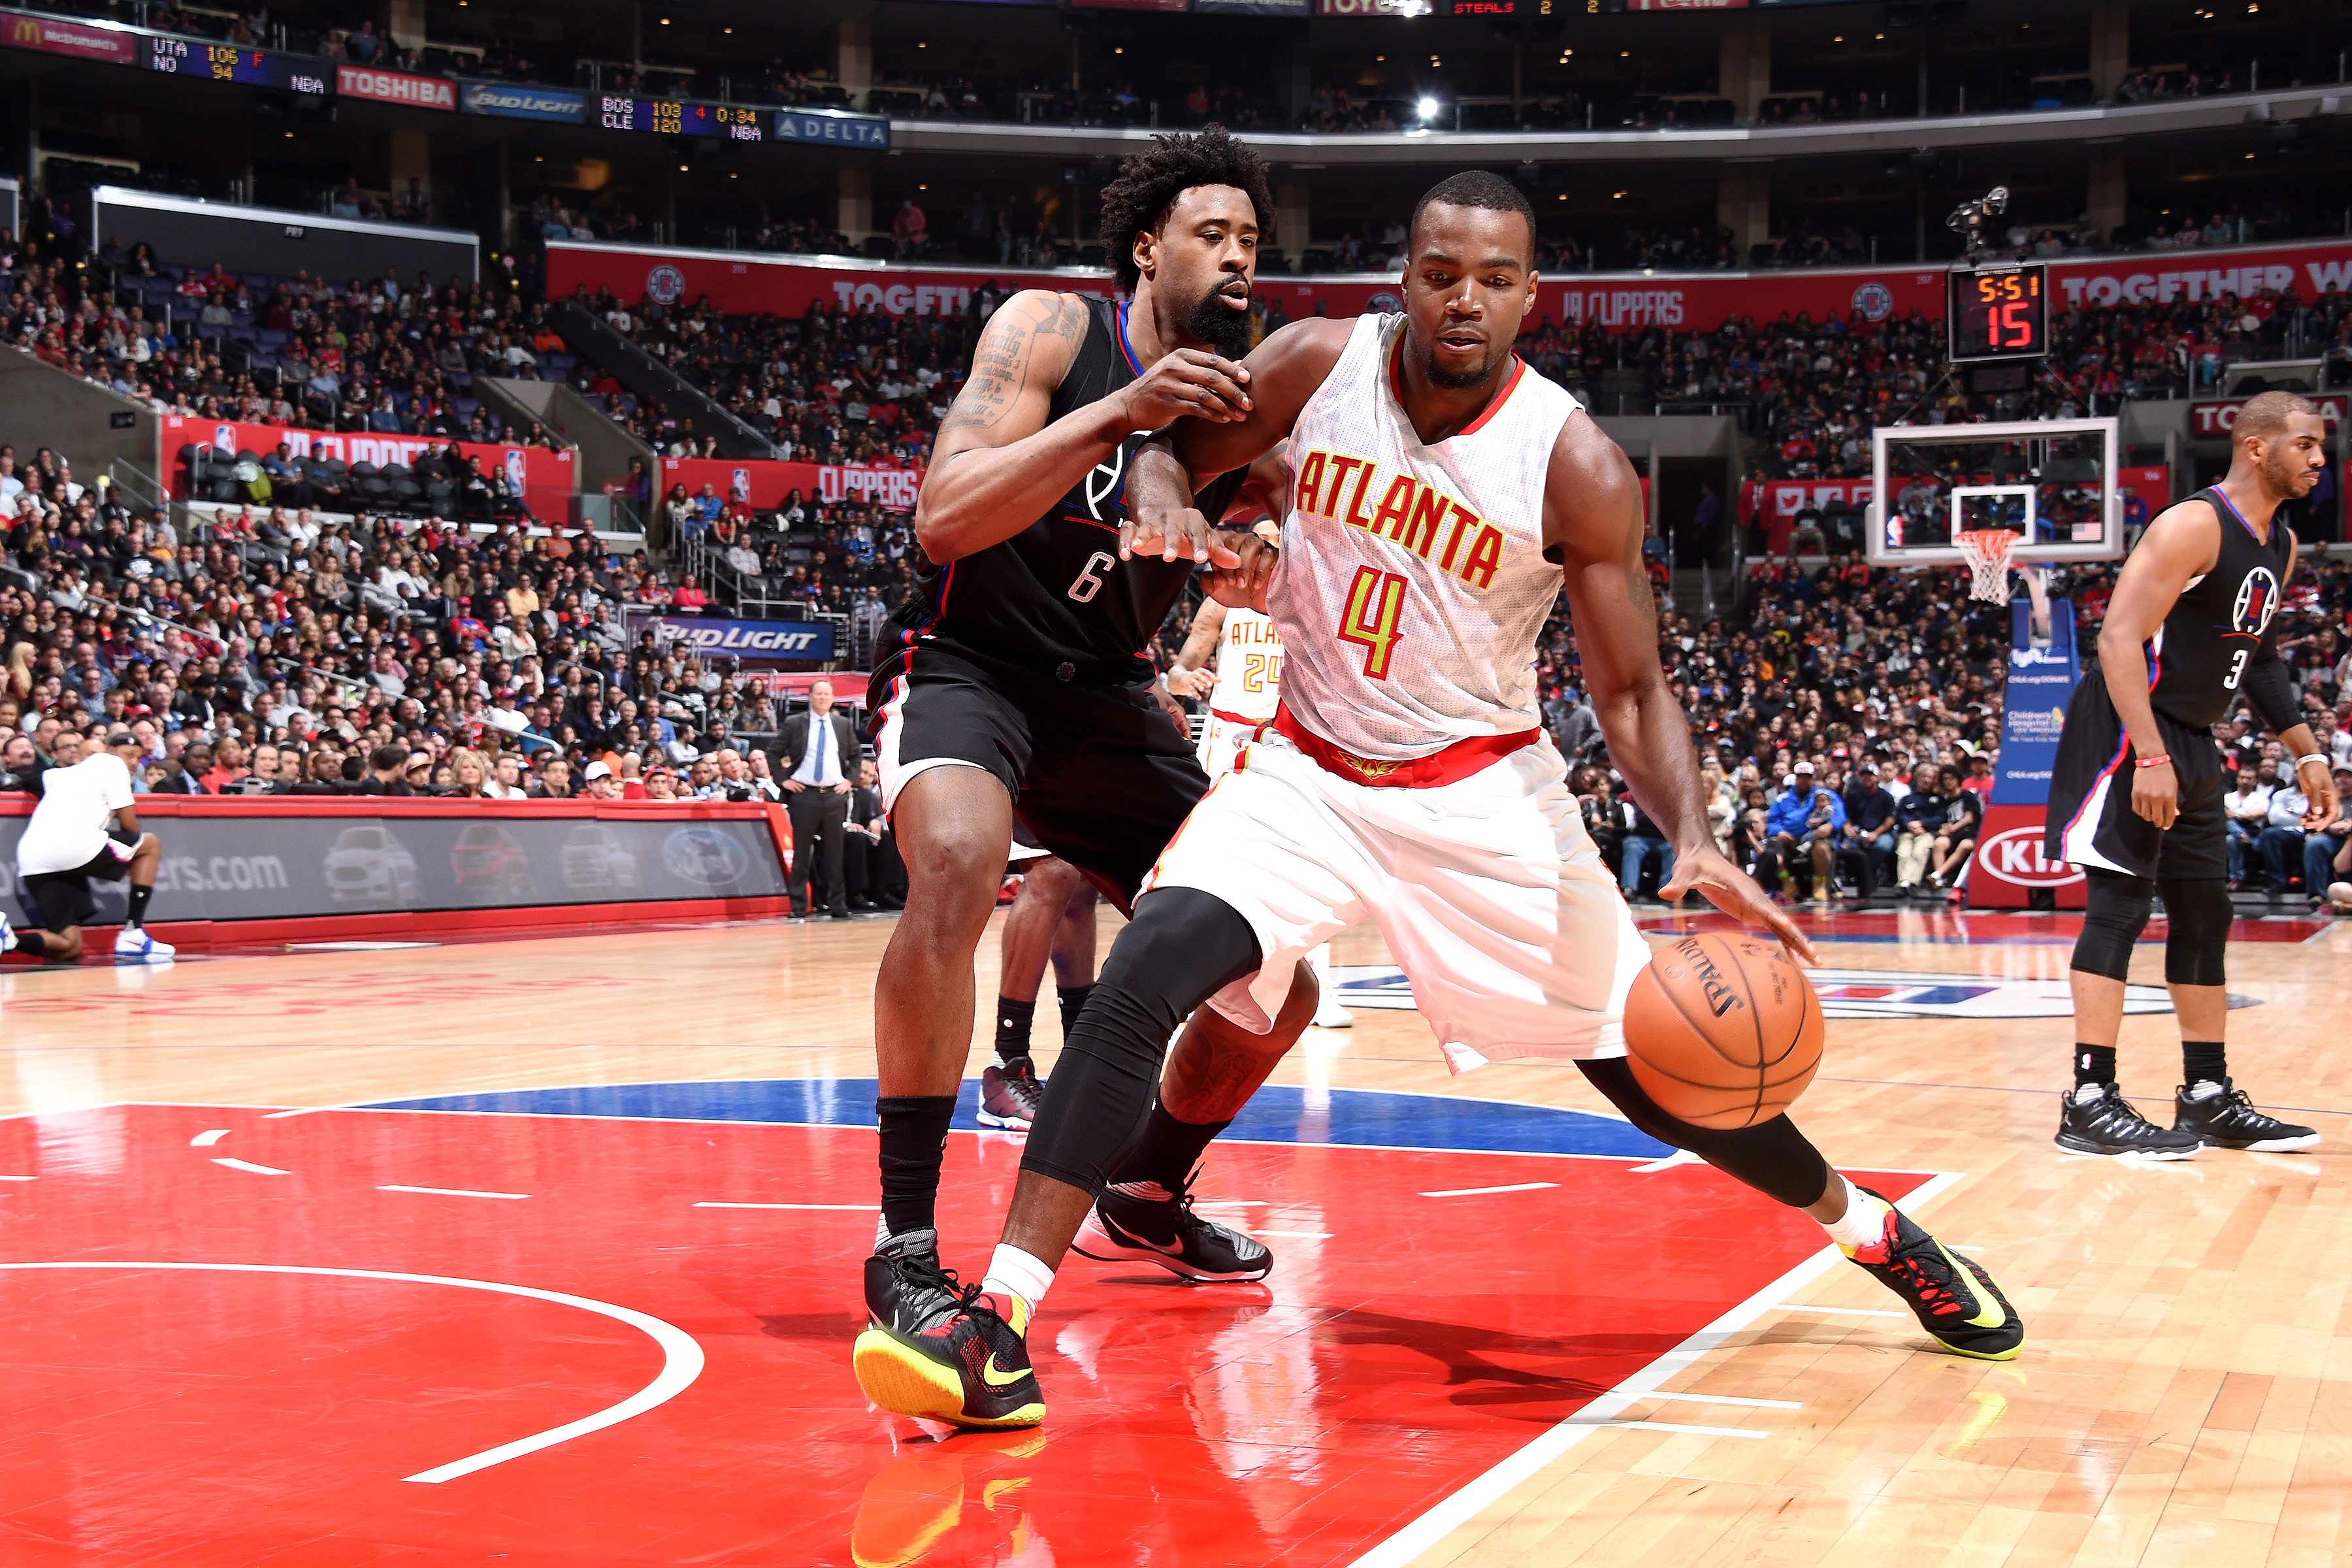 LOS ANGELES, CA - MARCH 5: Paul Millsap #4 of the Atlanta Hawks handles the ball during the game against the Los Angeles Clippers on March 5, 2016 at STAPLES Center in Los Angeles, California. (Photo by Andrew D. Bernstein/NBAE via Getty Images)